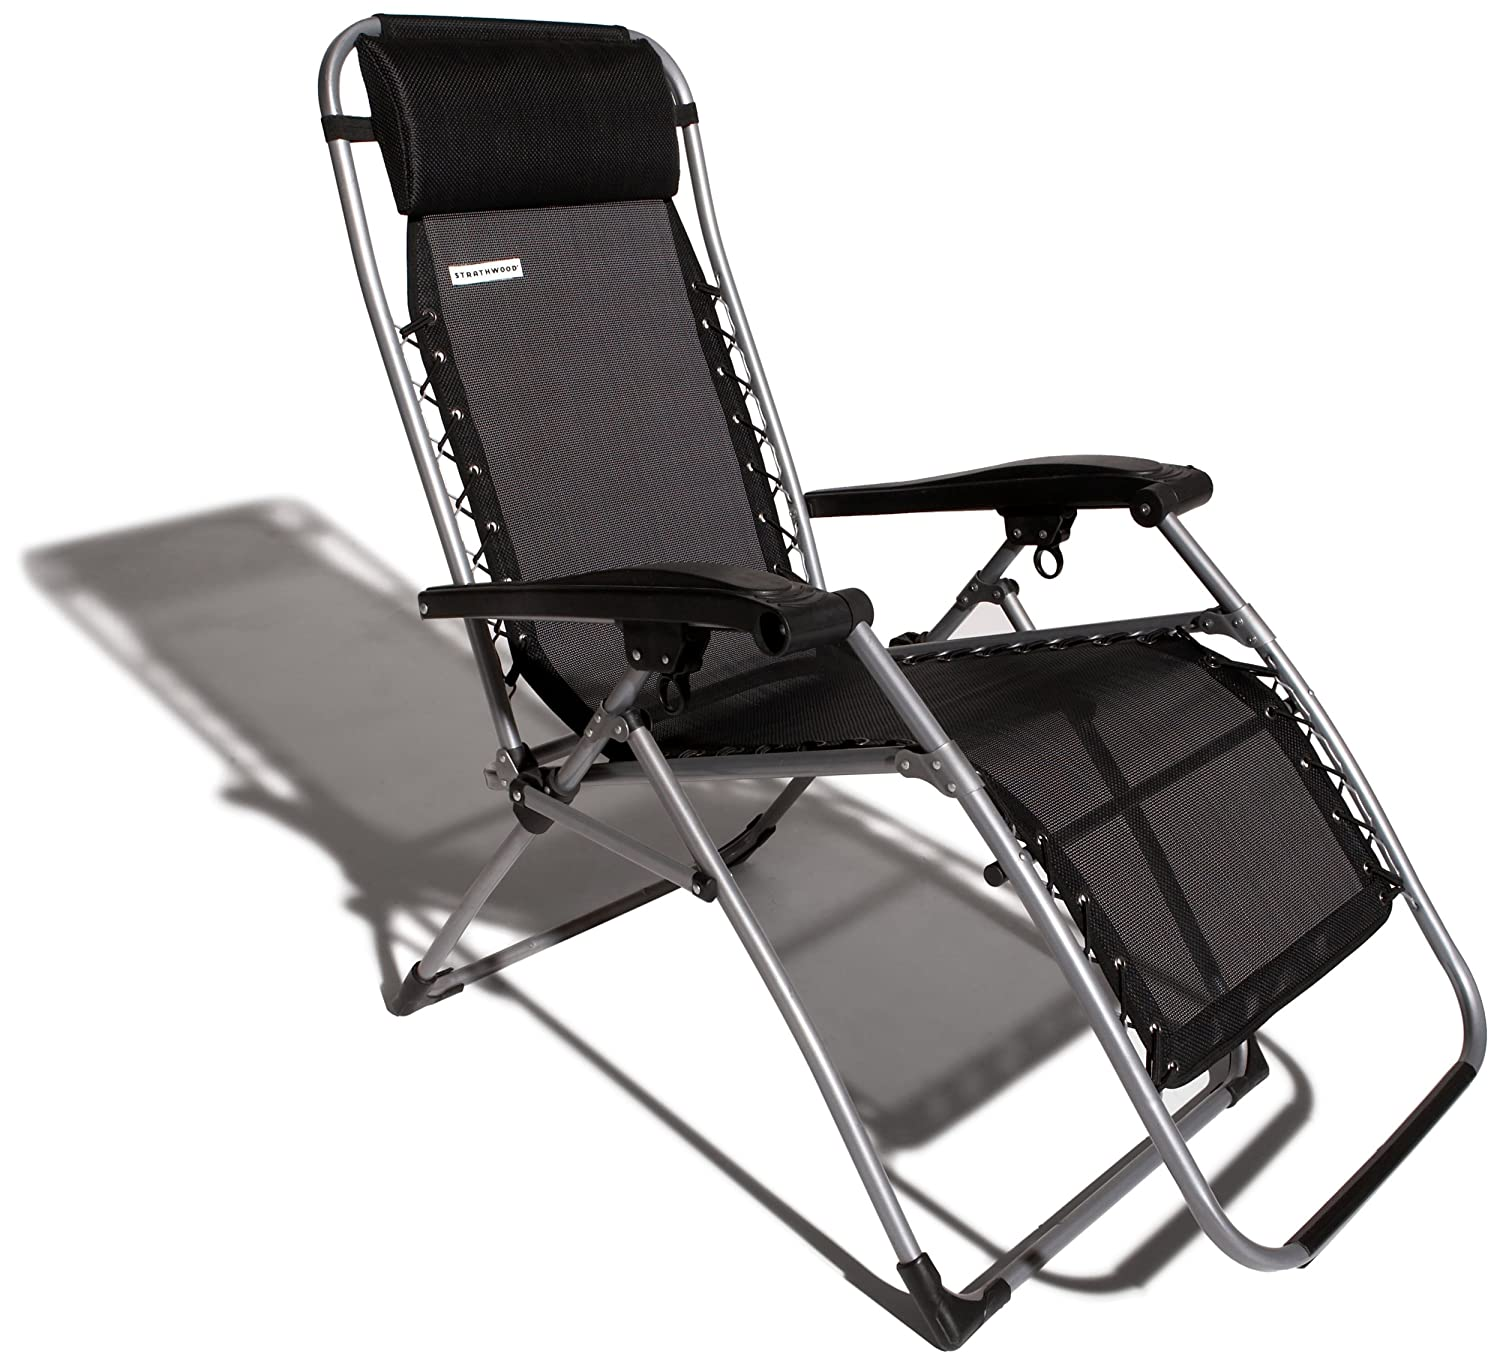 Strathwood Basics Anti-Gravity Adjustable Recliner Chair, Black with Silver Frame $49.99